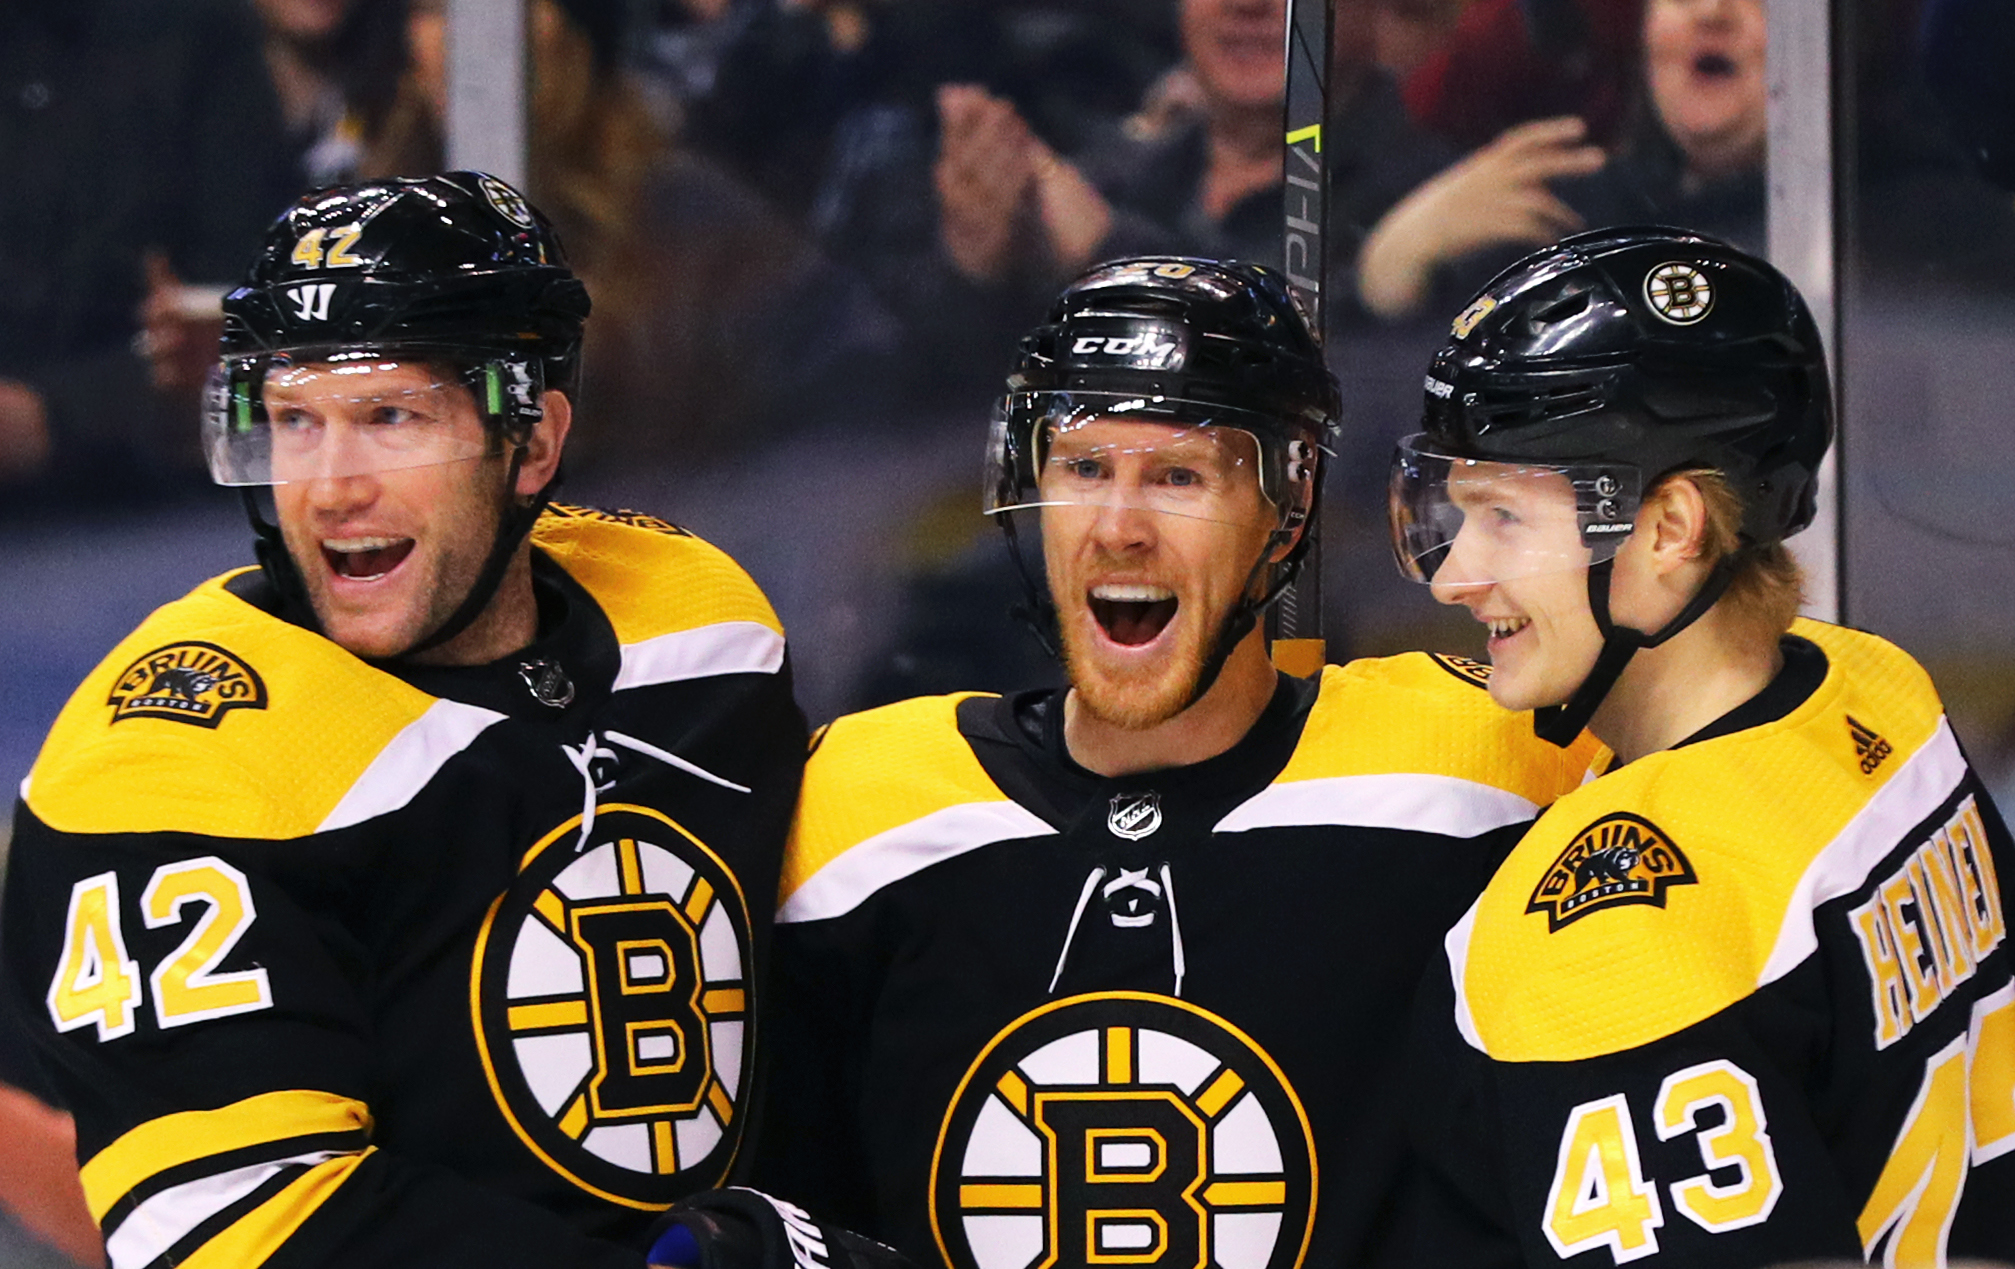 There weren't a lot of smiles for the Bruins third line during the playoffs